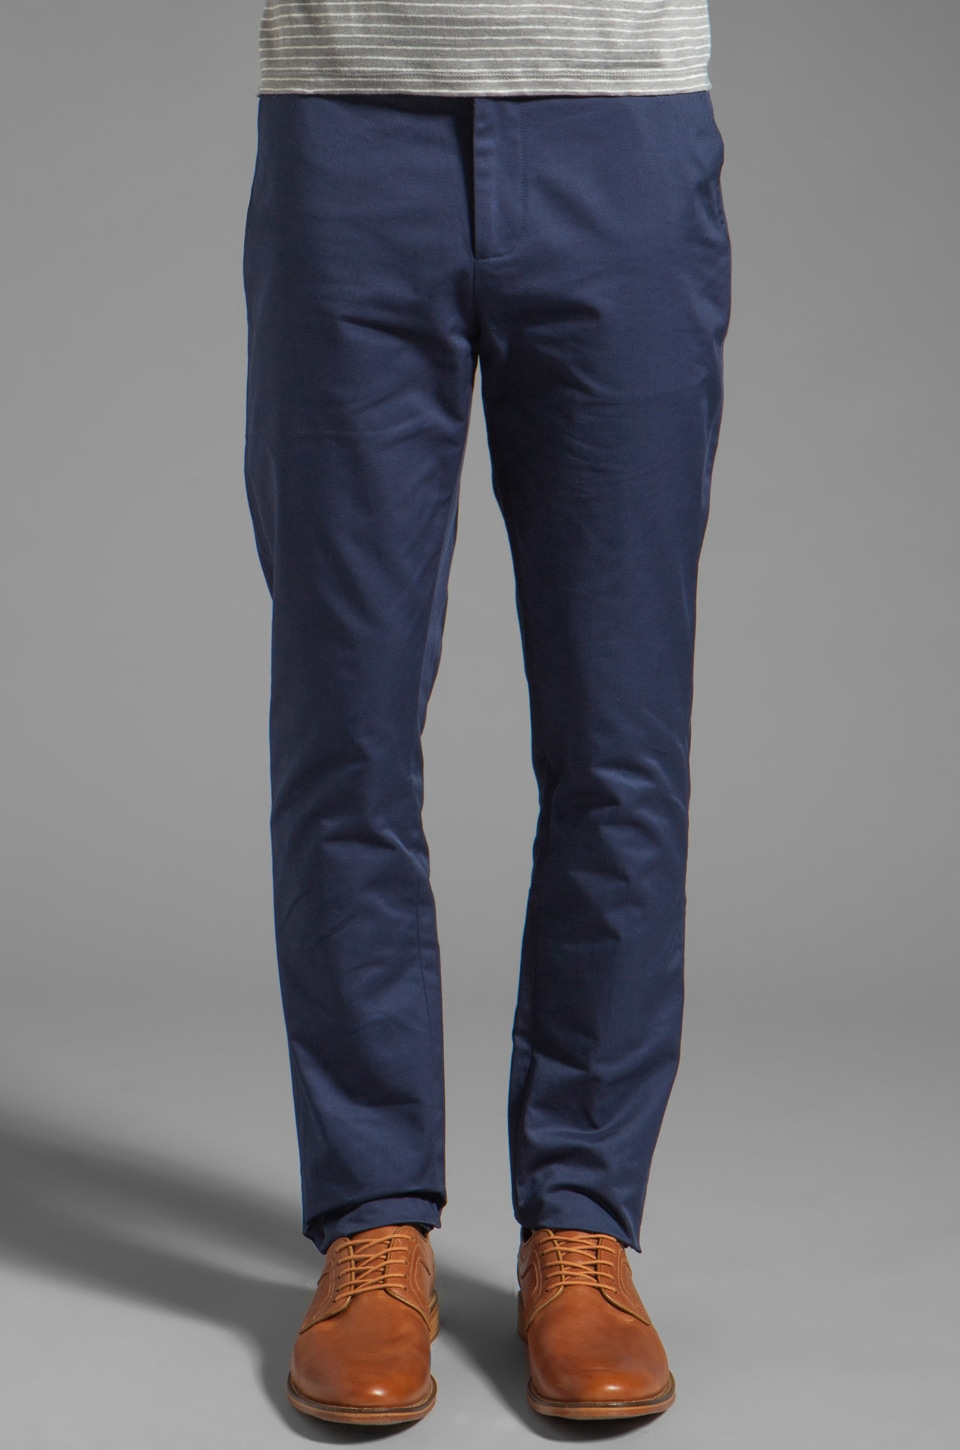 Vanishing Elephant Classic Suit Pant in Navy